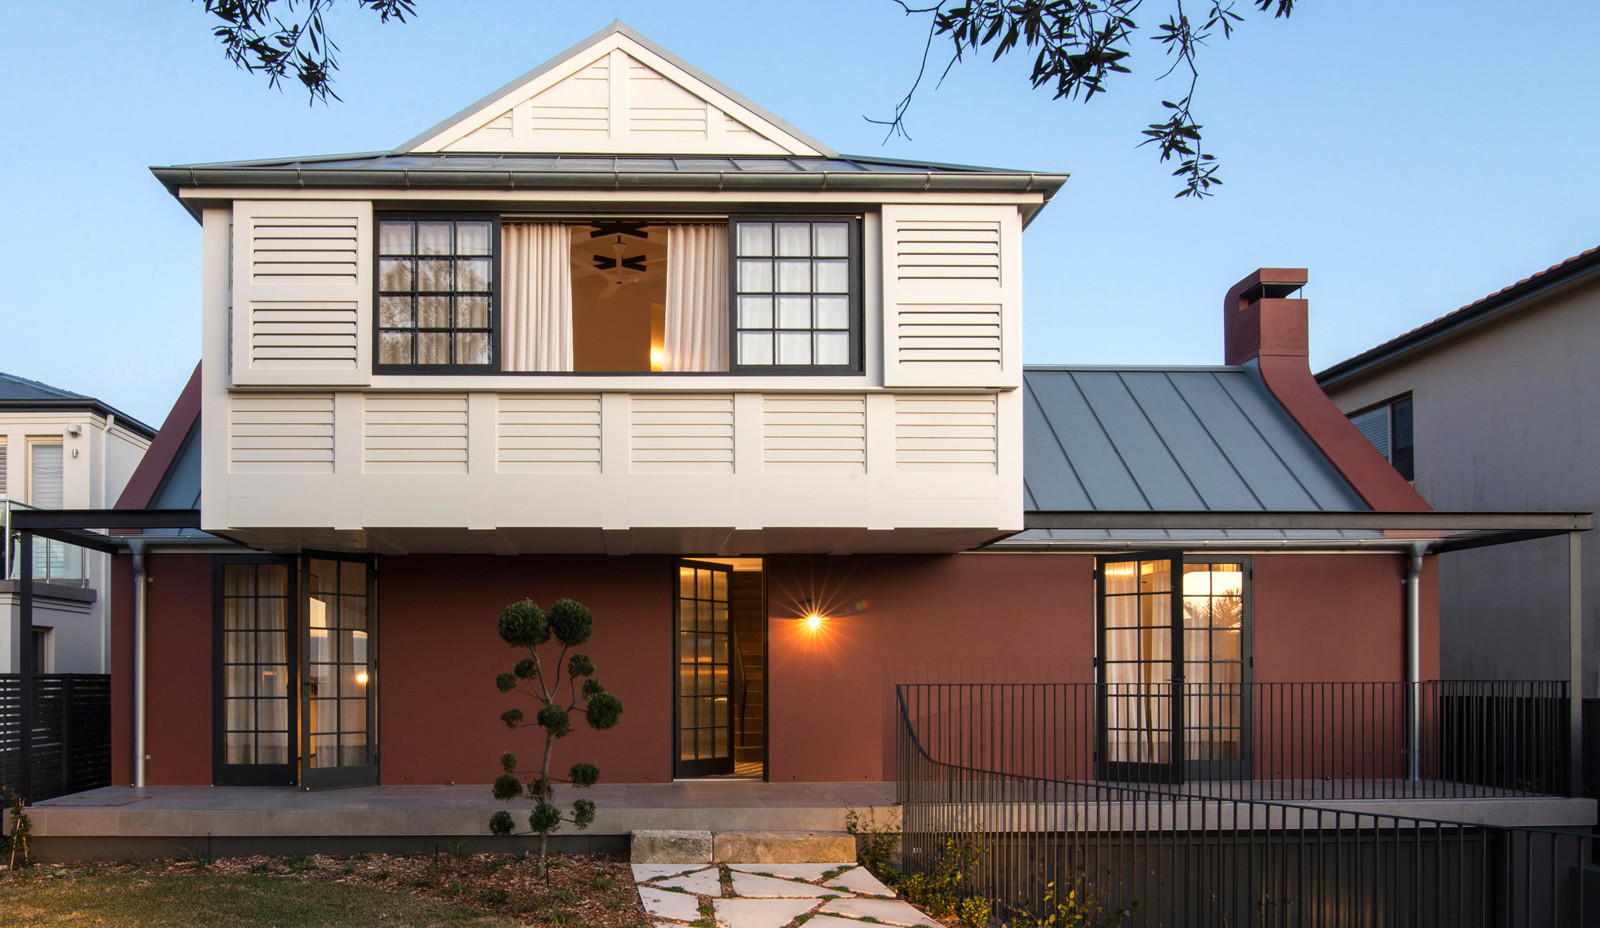 Private-House-Sydney-just3ds.com-14